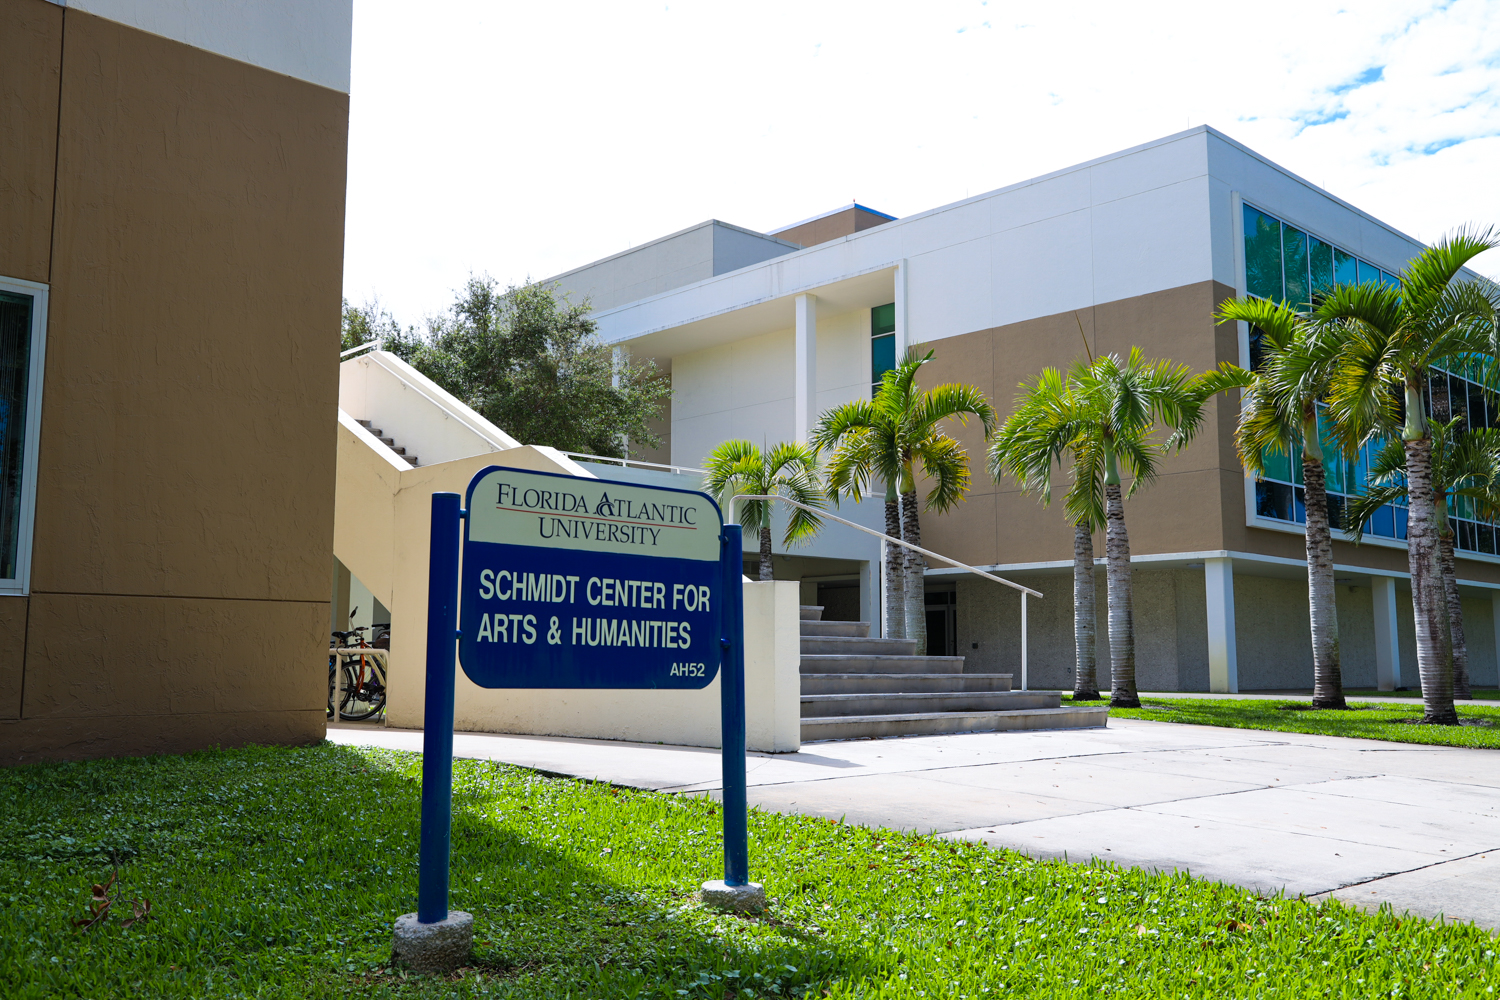 FAU Schmidt Center for Arts & Humanities